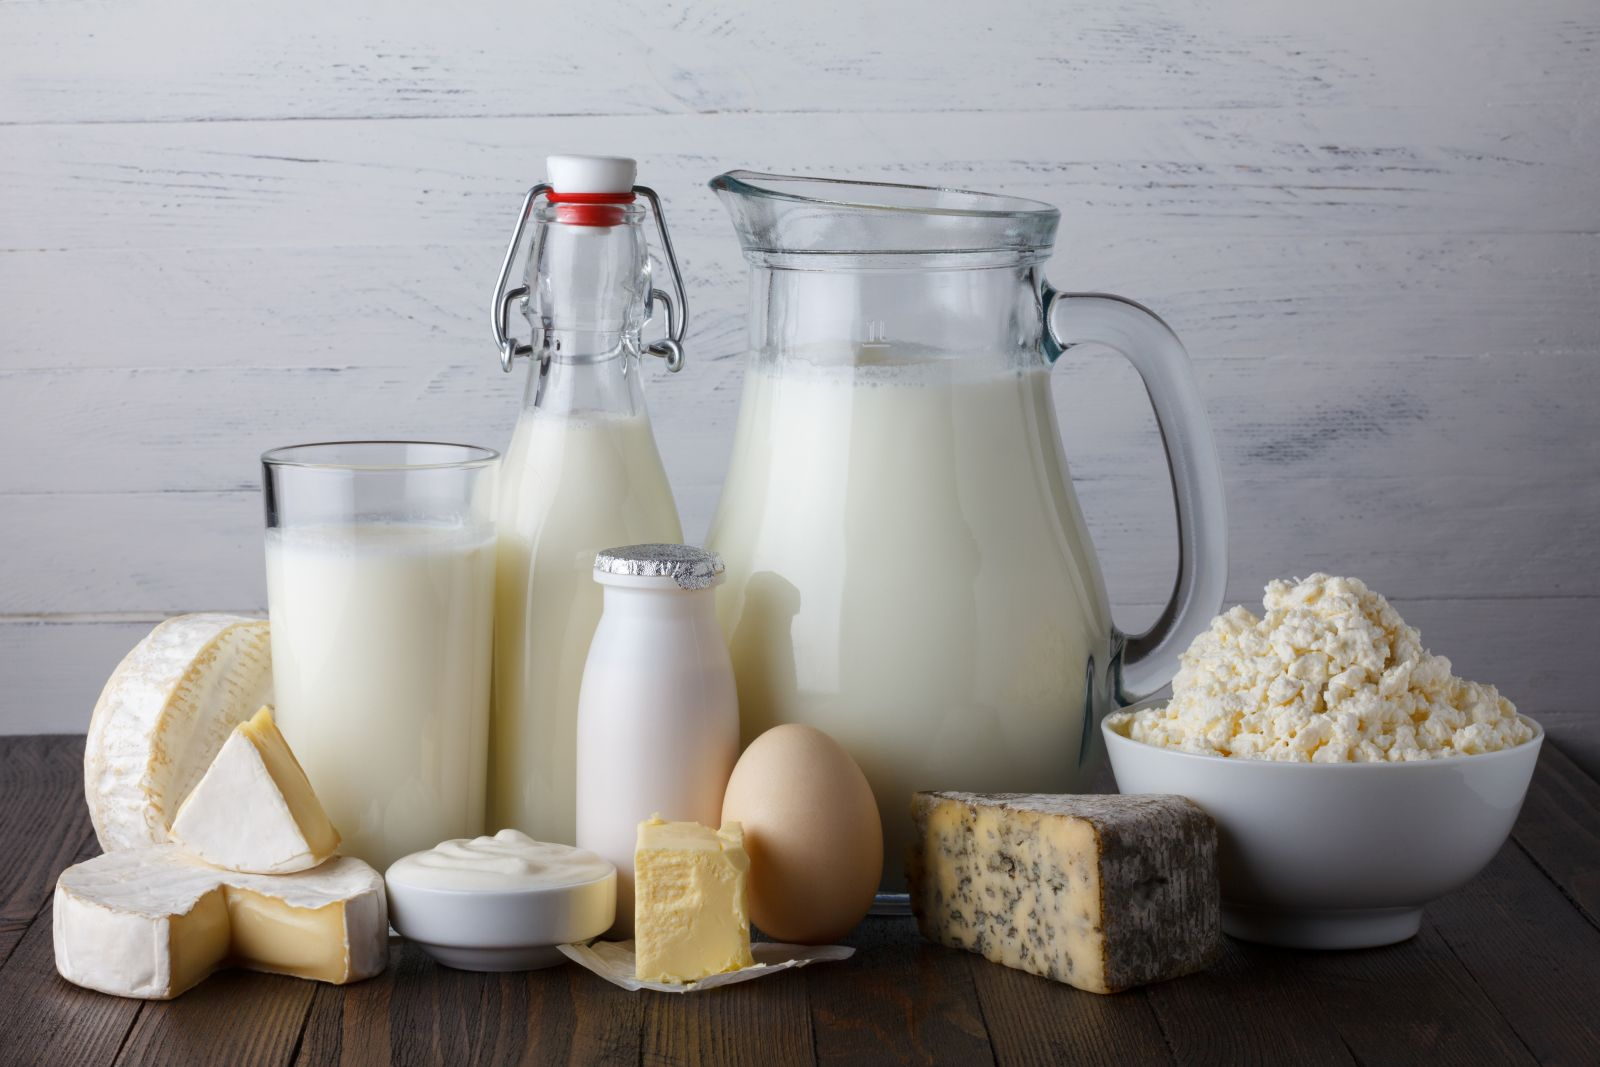 more dairy associated with higher bone density in men over 50